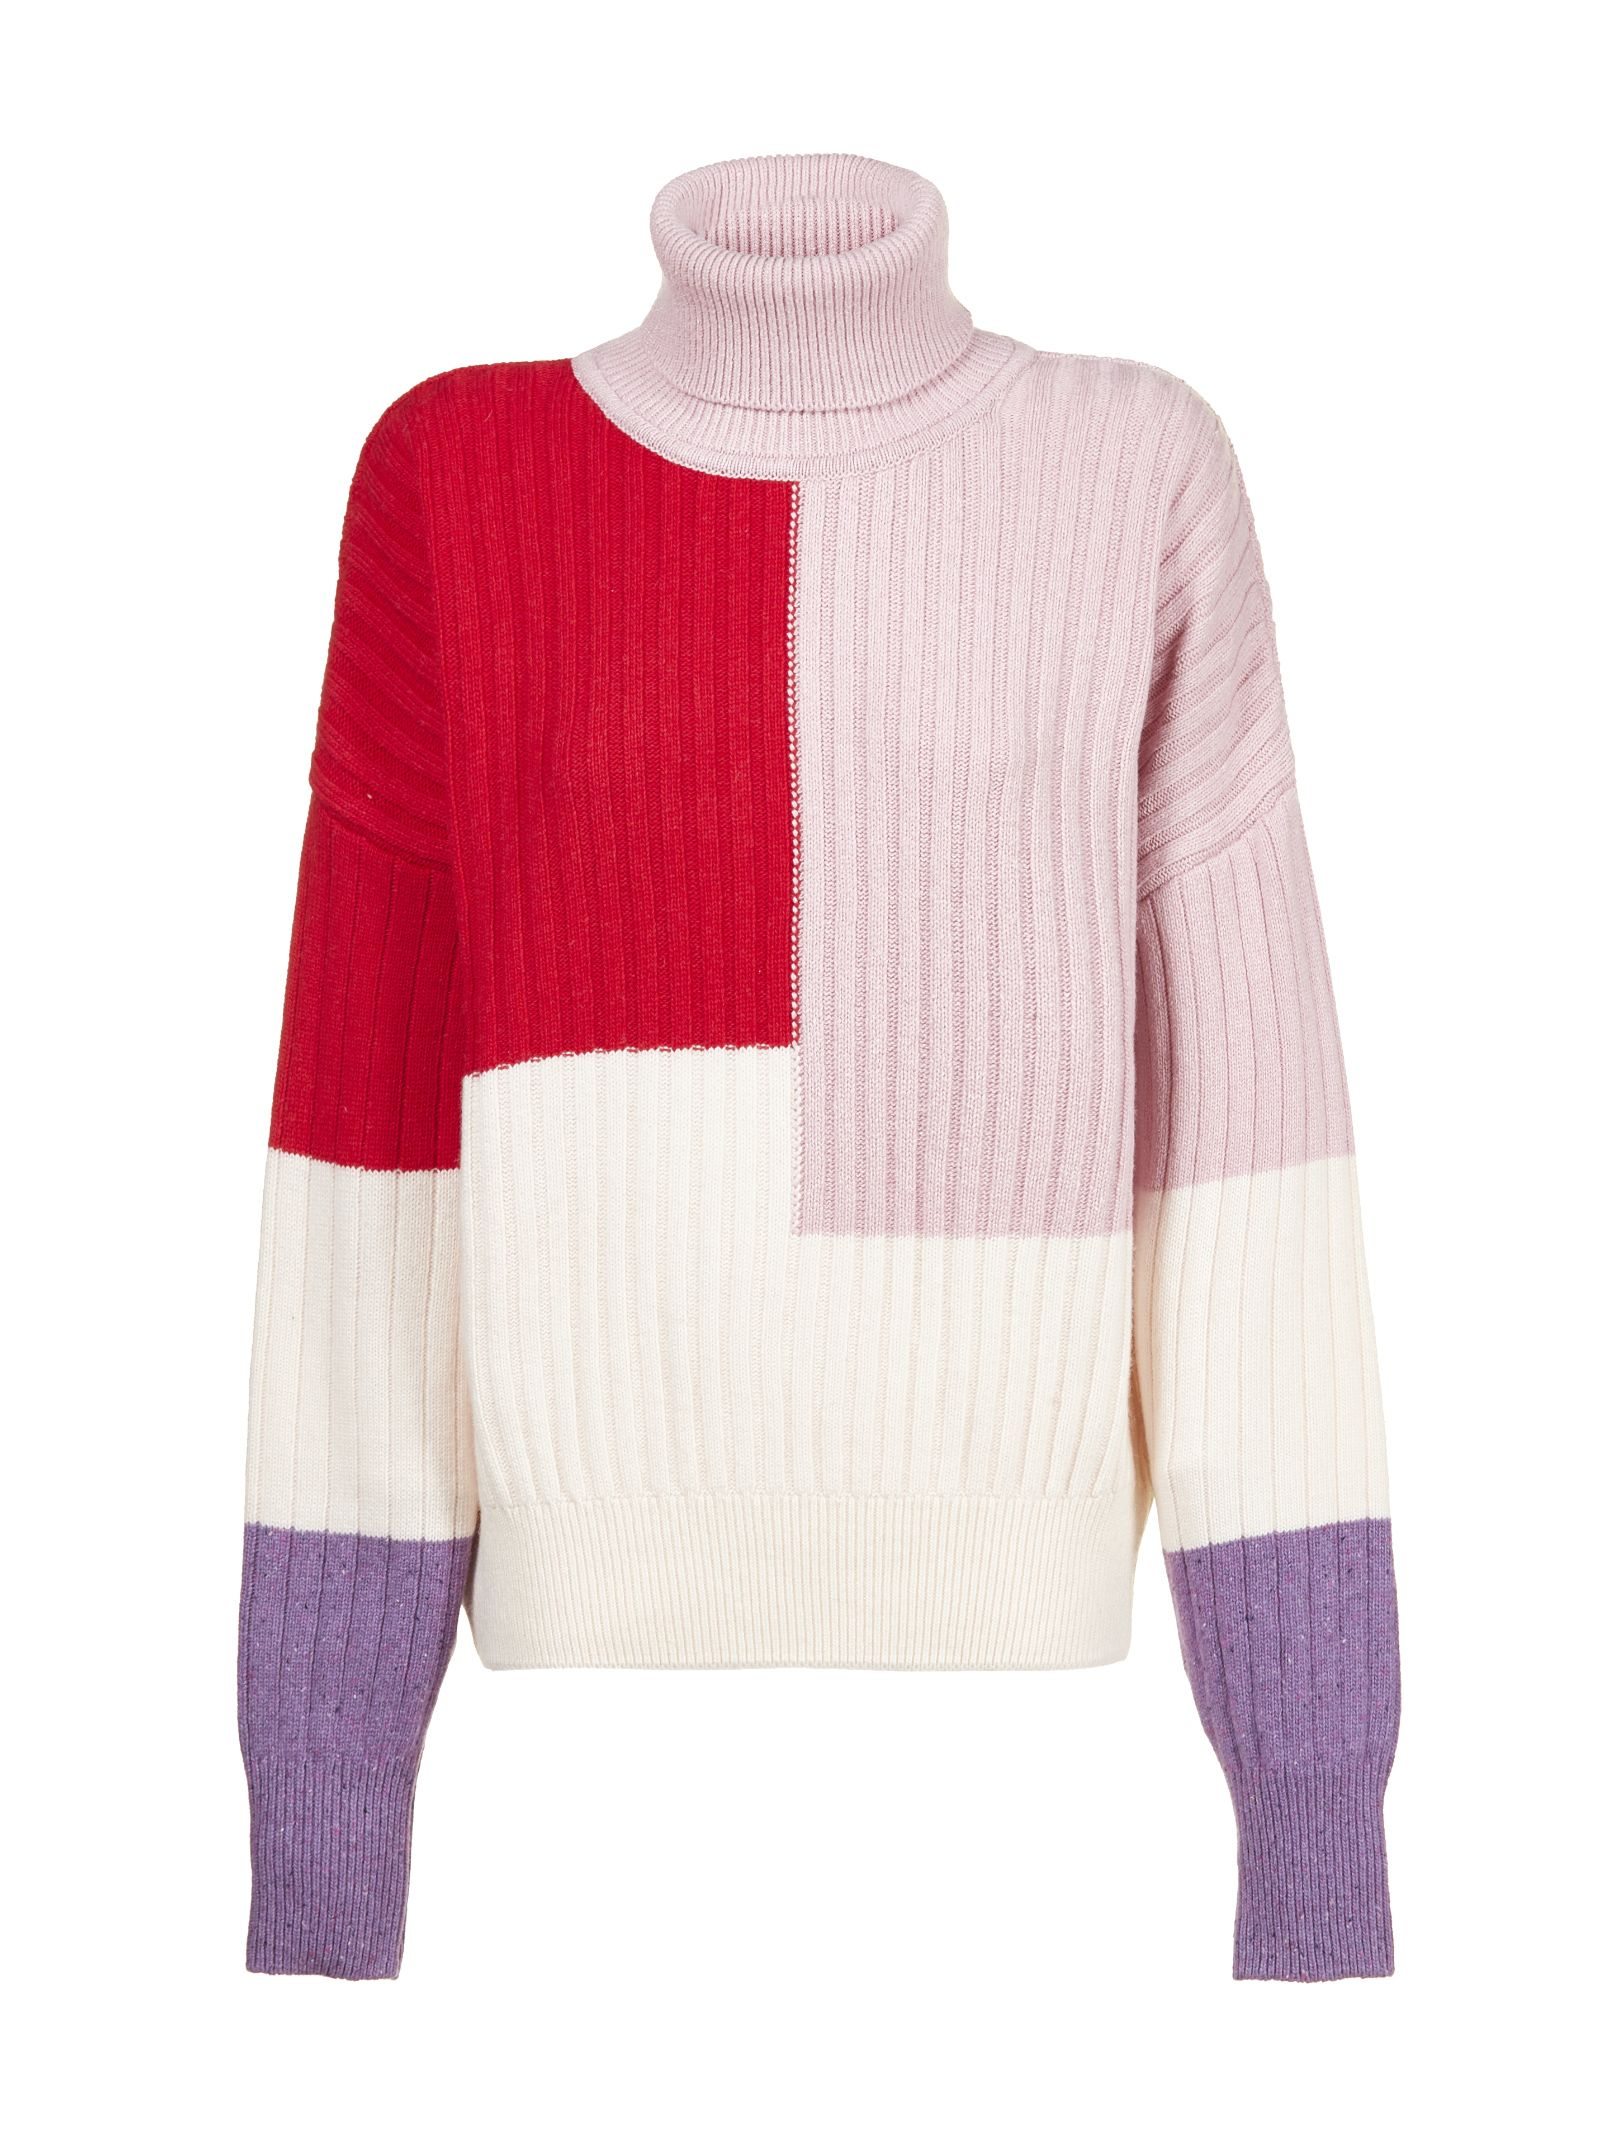 VALENTINE WITMEUR LAB Valentine Witmeur Ribbed Sweater in Panna Rosa Rosso